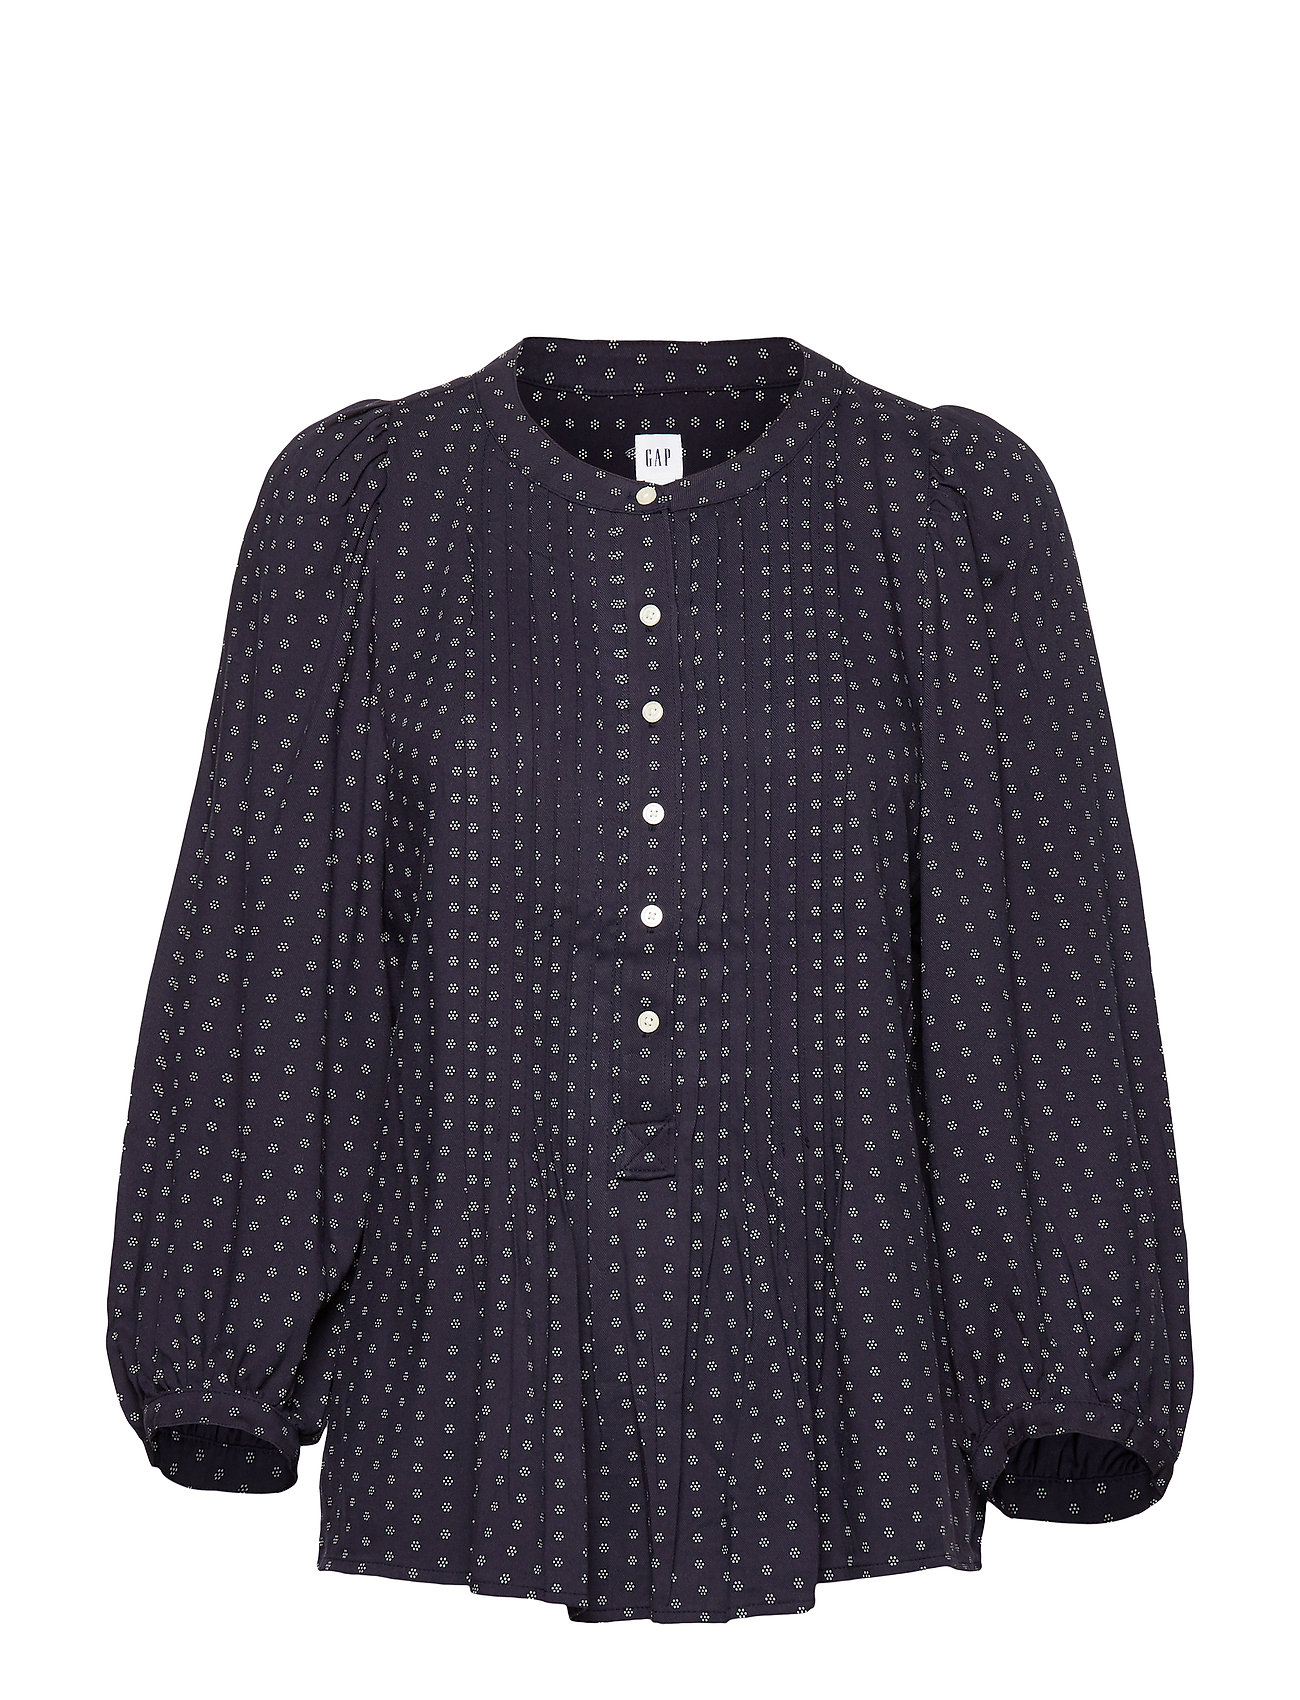 GAP Pleated Popover Top - NAVY PRINT